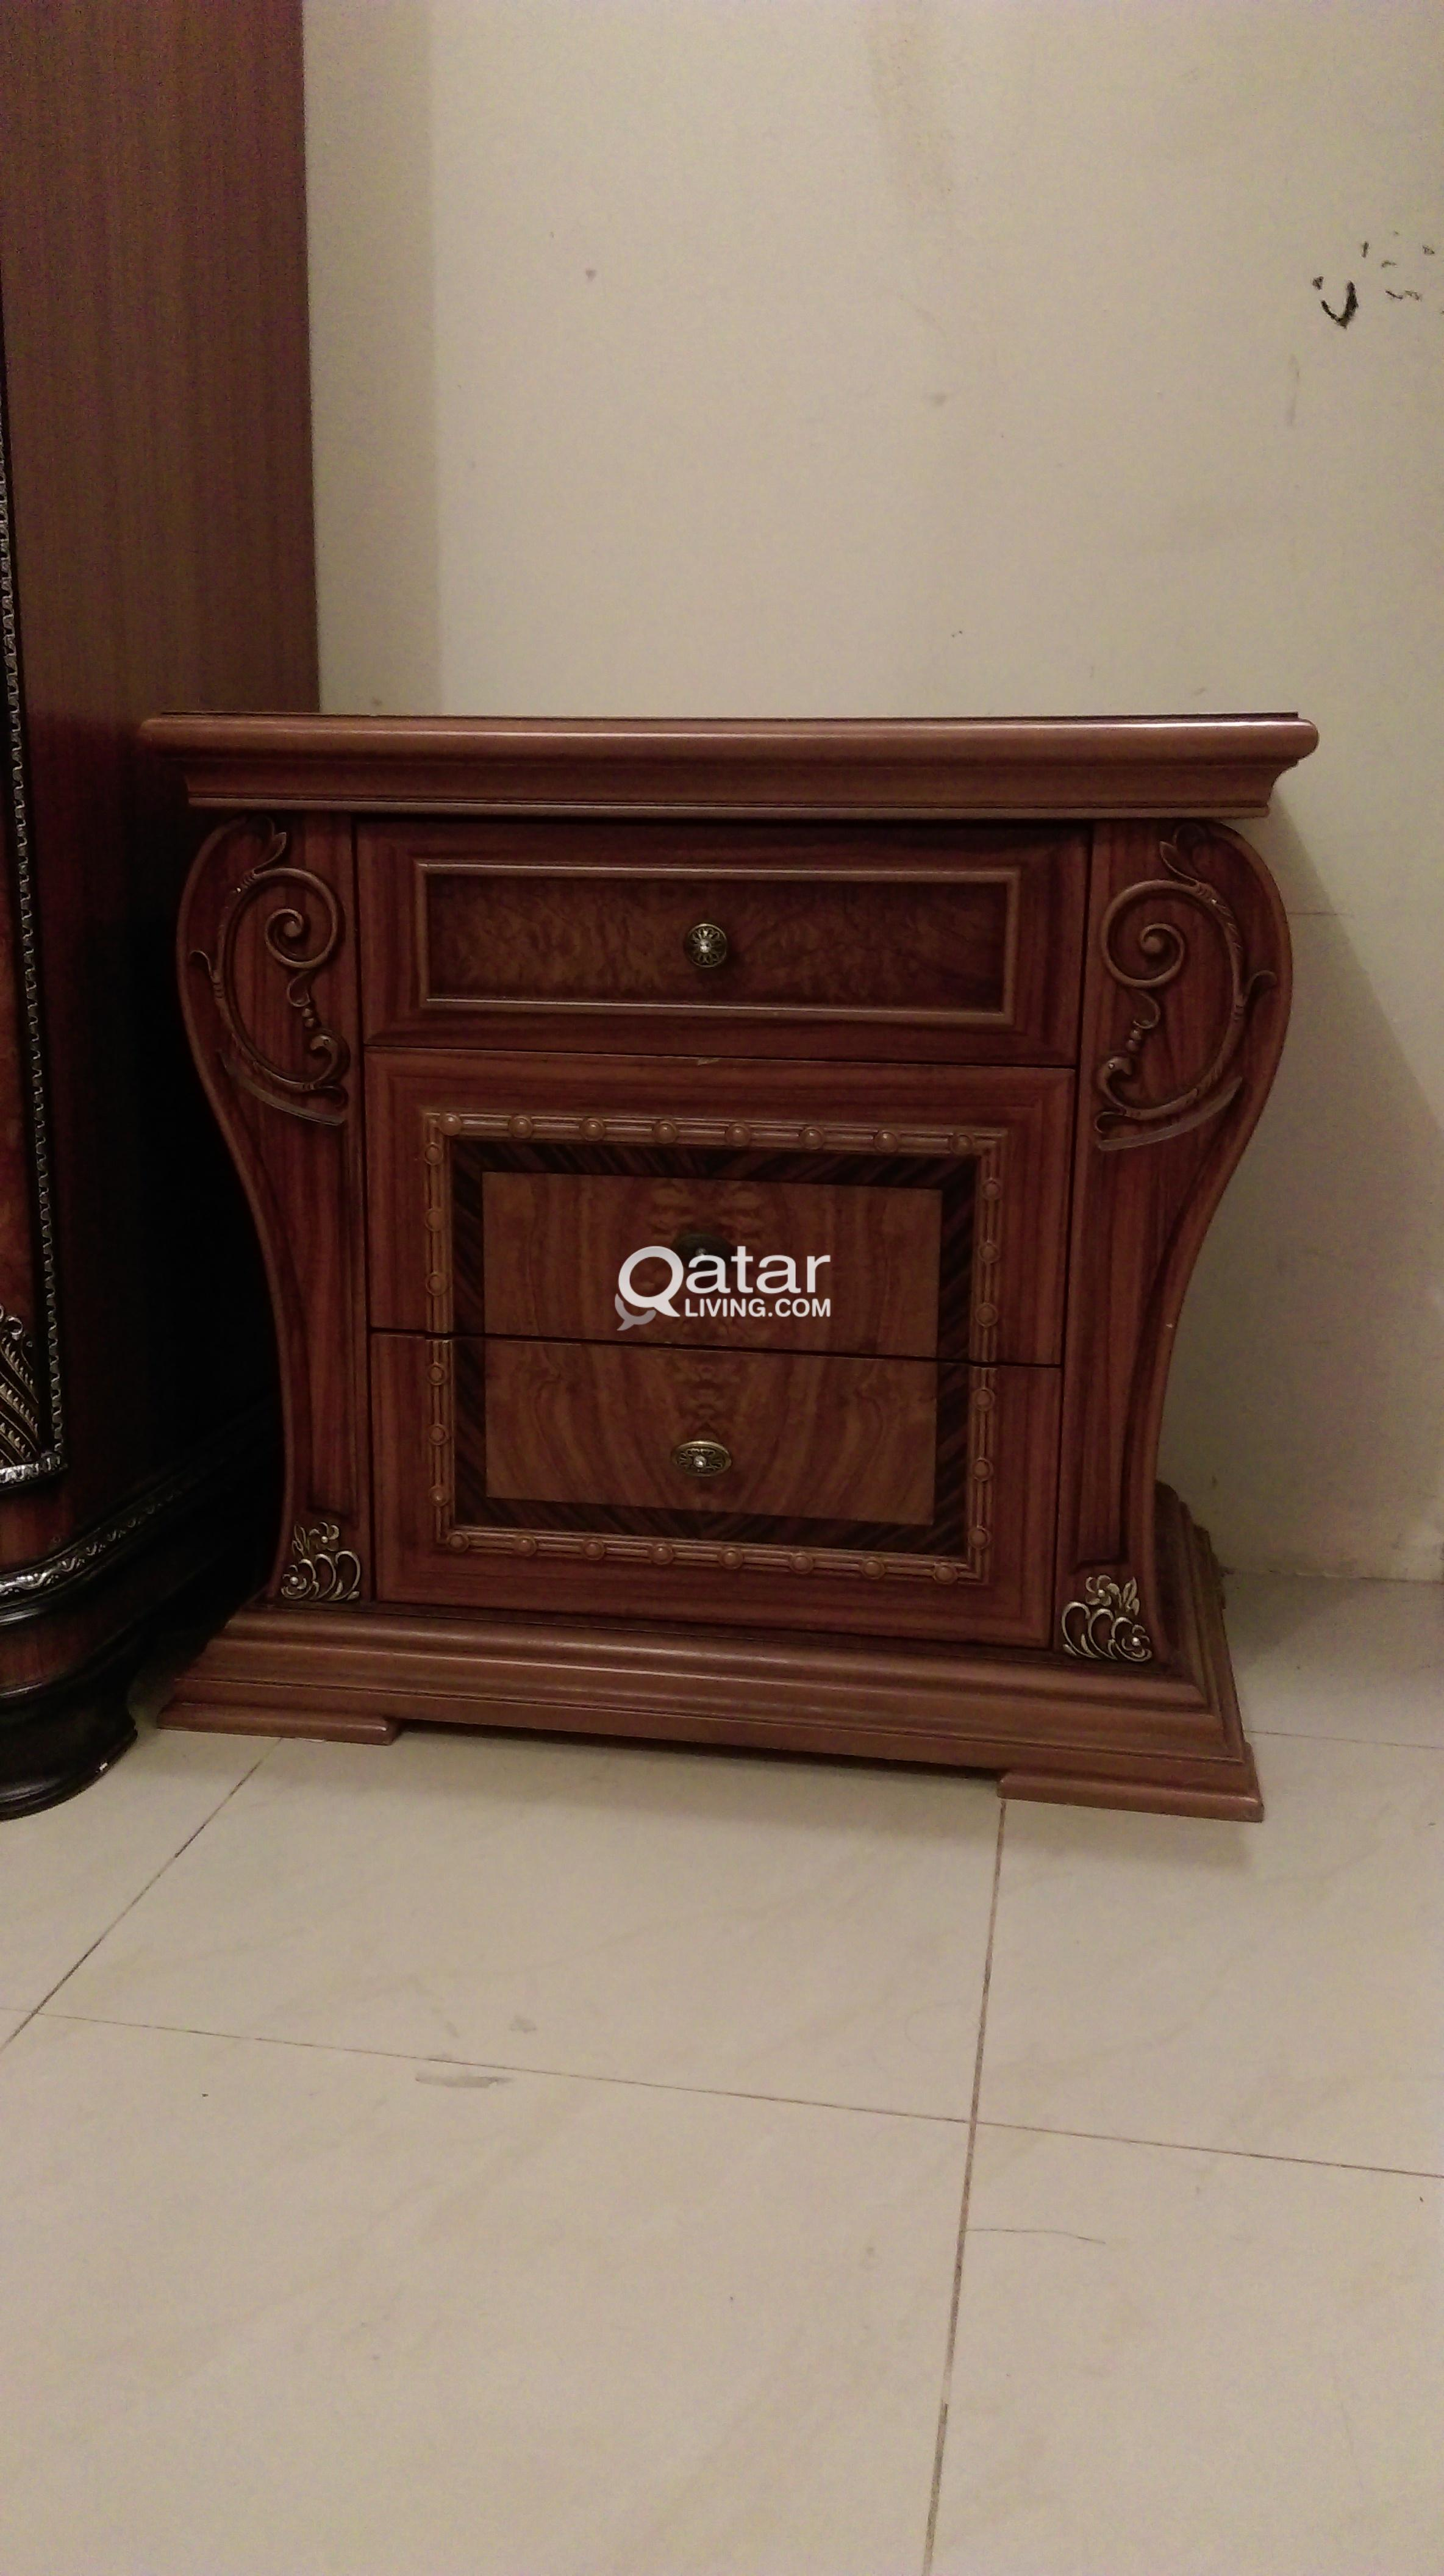 living wood set title furniture sets qatar bedroom solid in items excellent condition